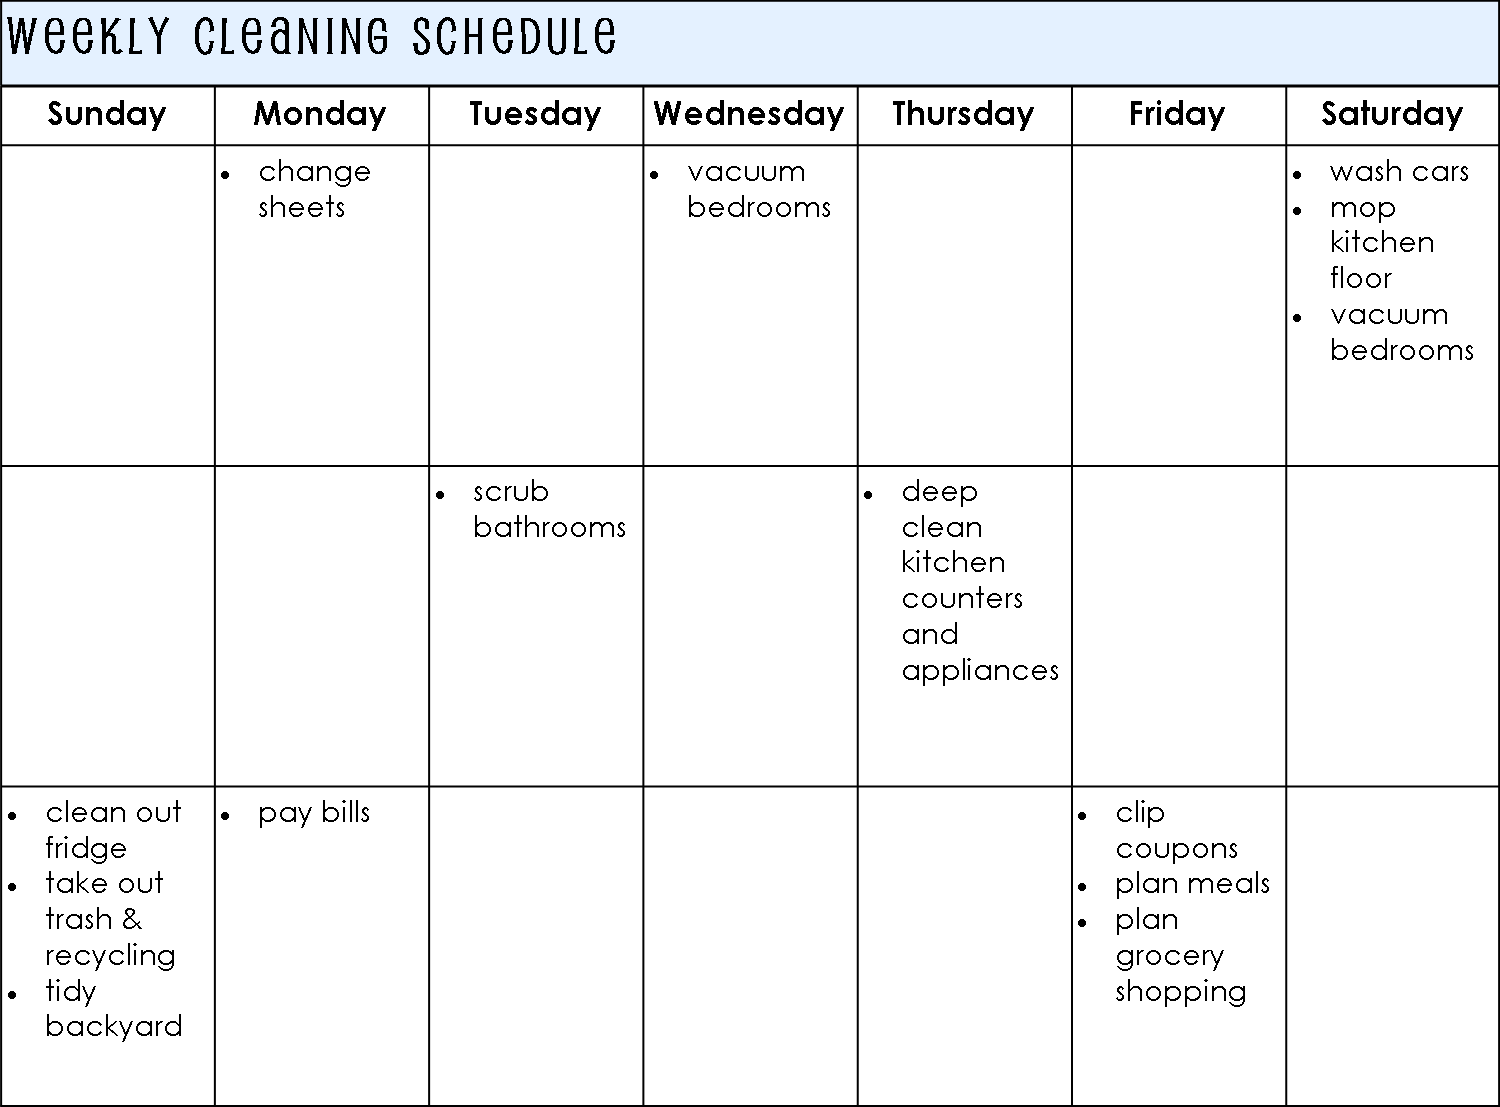 sample house cleaning checklist – Sample Cleaning Schedule Template